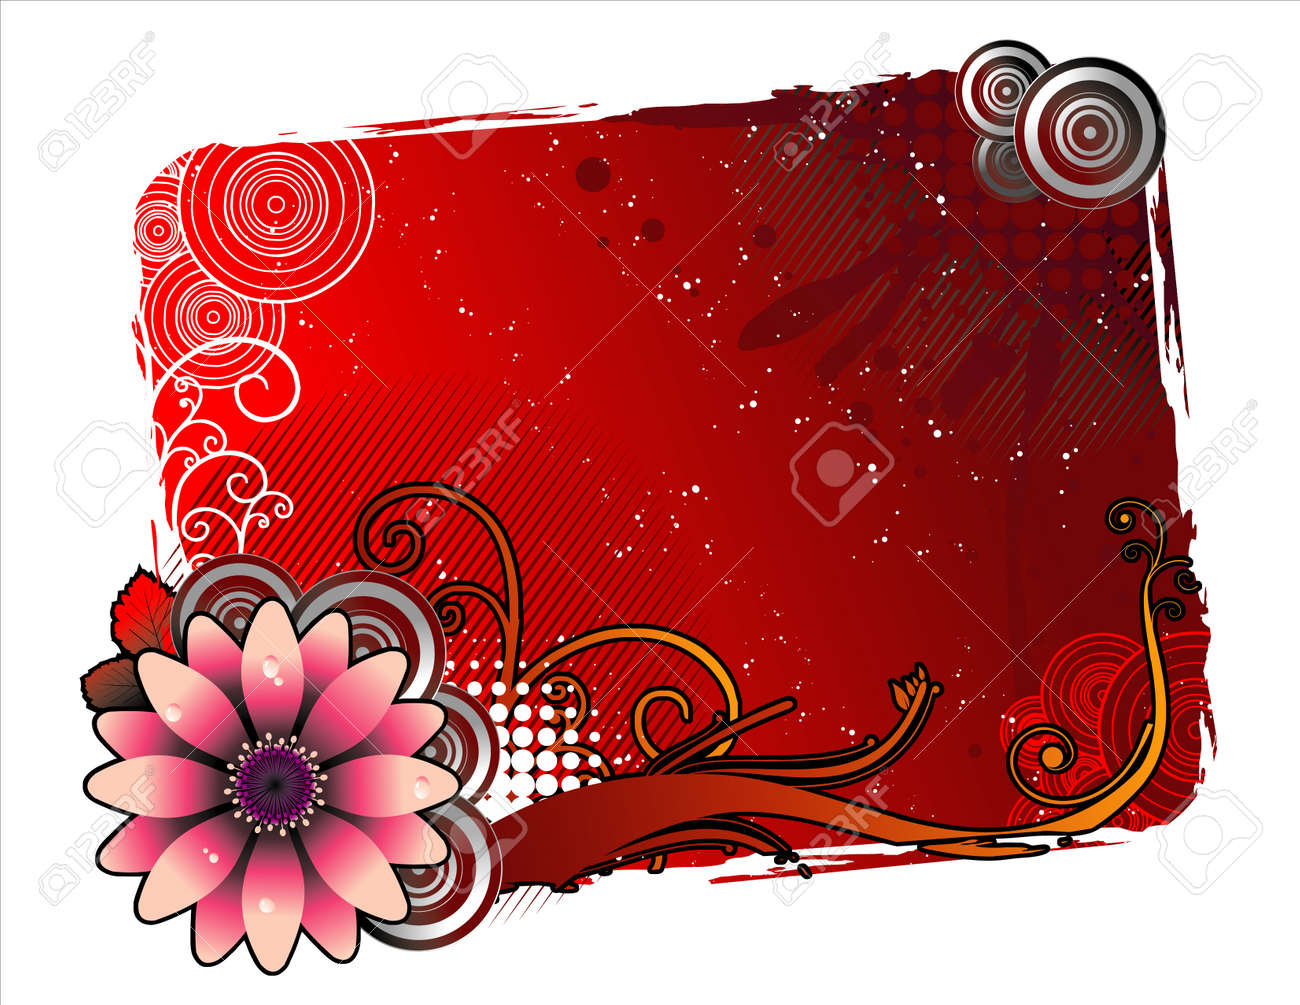 vector illustration of fantasy shapes of flowers for text input Stock Vector - 3866975